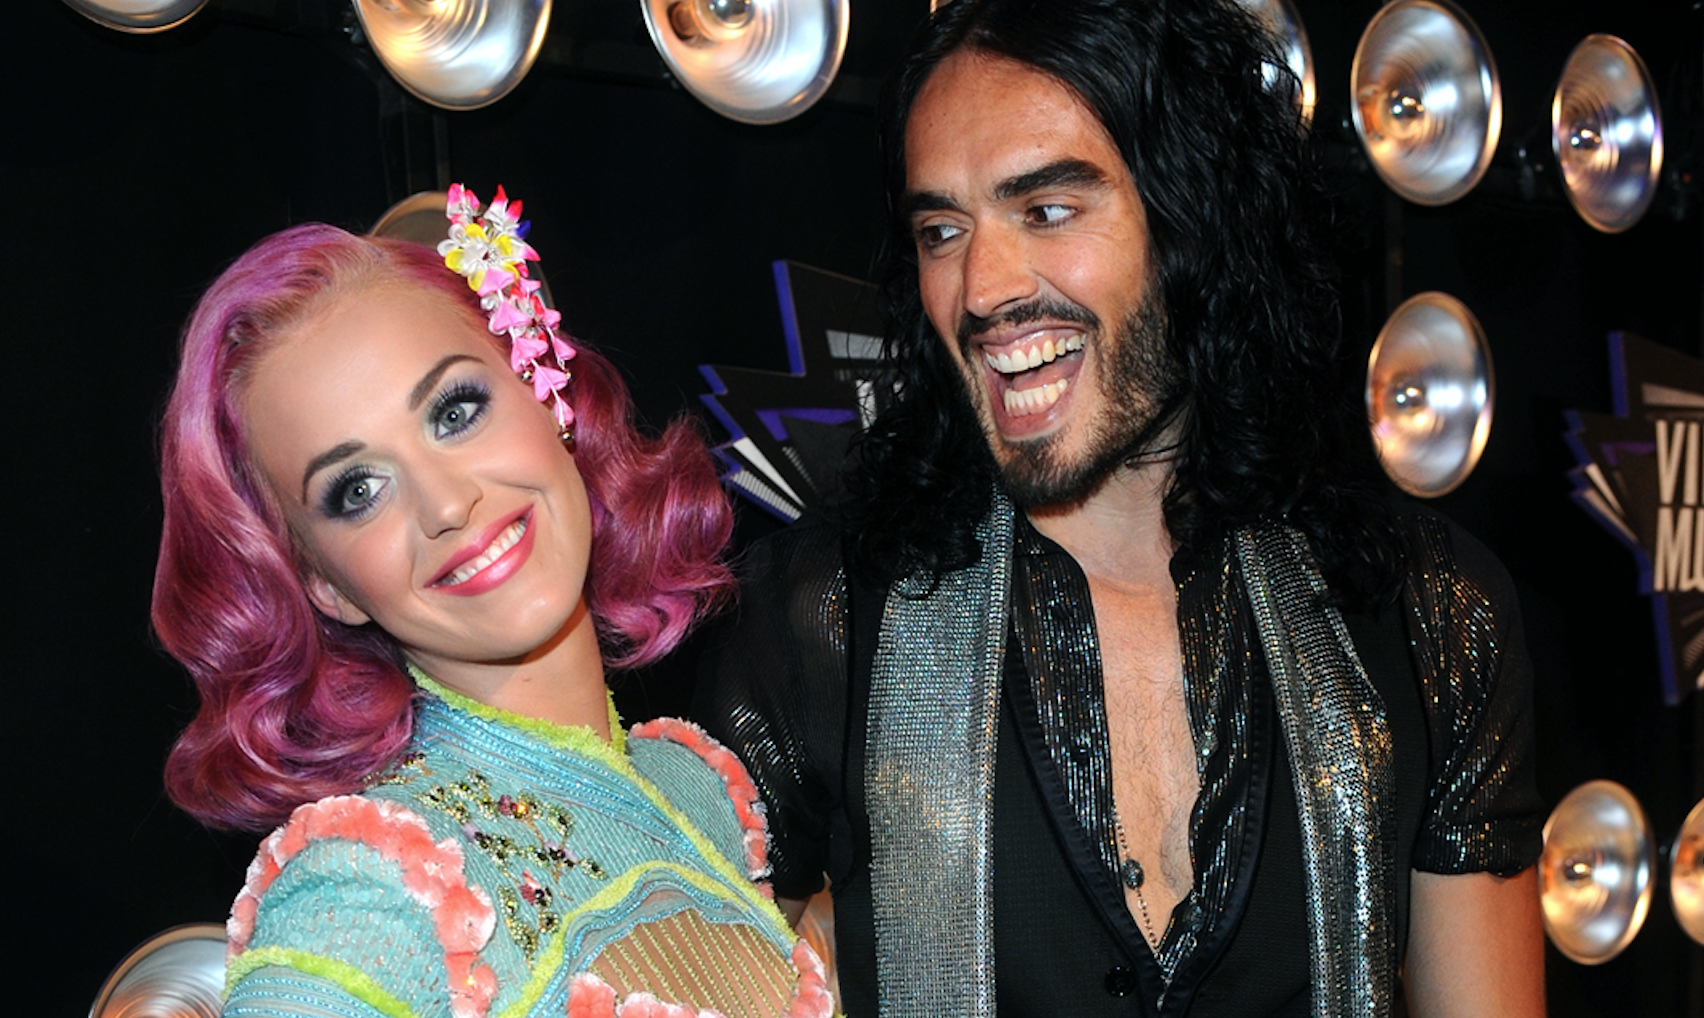 Russell Brand on Katy Perry Marriage: I May Have